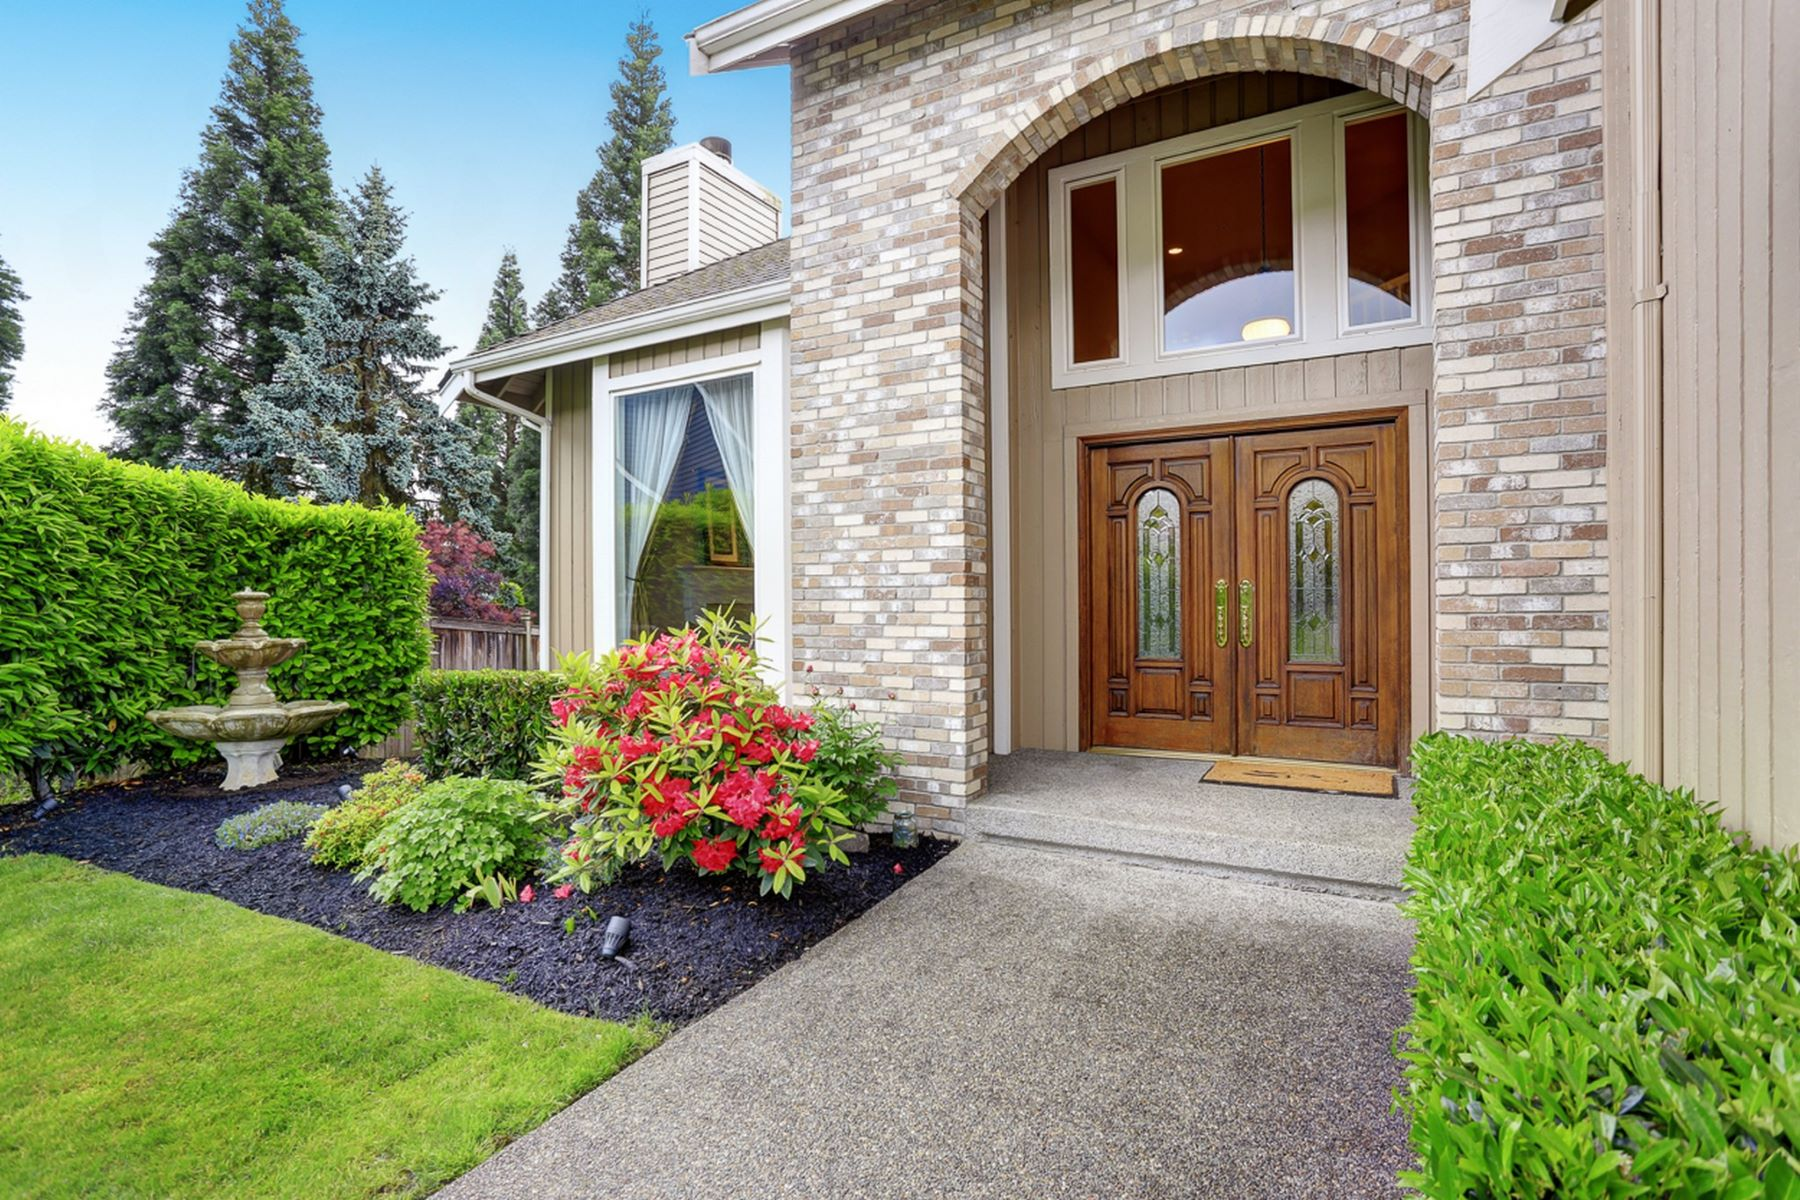 Single Family Home for Sale at The Gem of Lavender Hills 9211 S 237th Place Kent, Washington 98031 United States